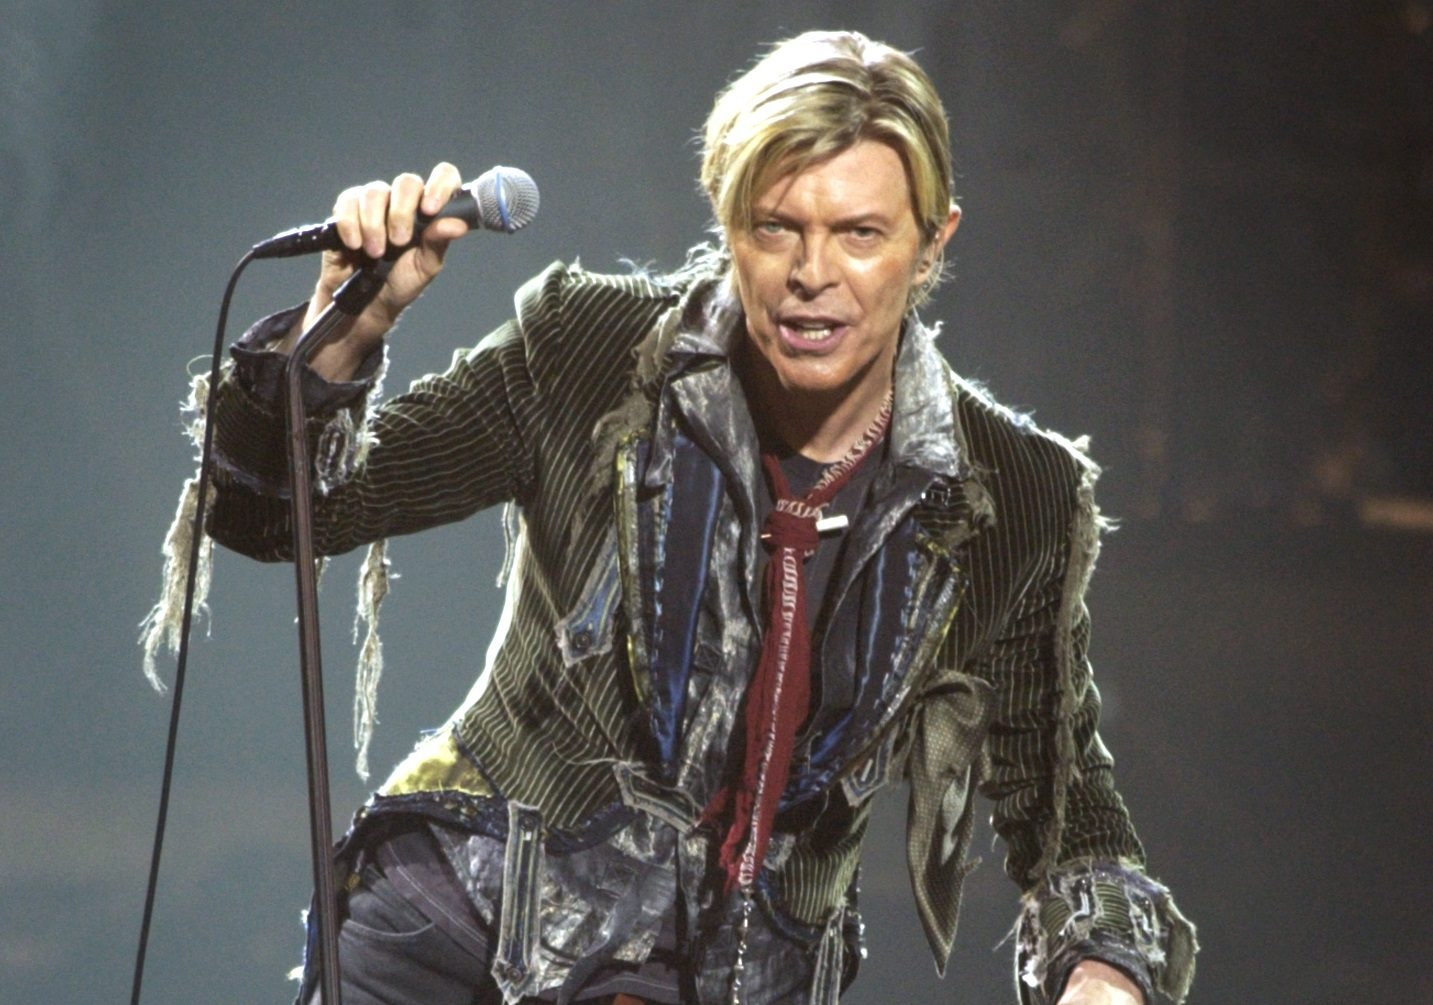 David Bowie performed a sold-out show on May 25, 2004, at Shea's Performing Arts Center. (Buffalo News file photo)